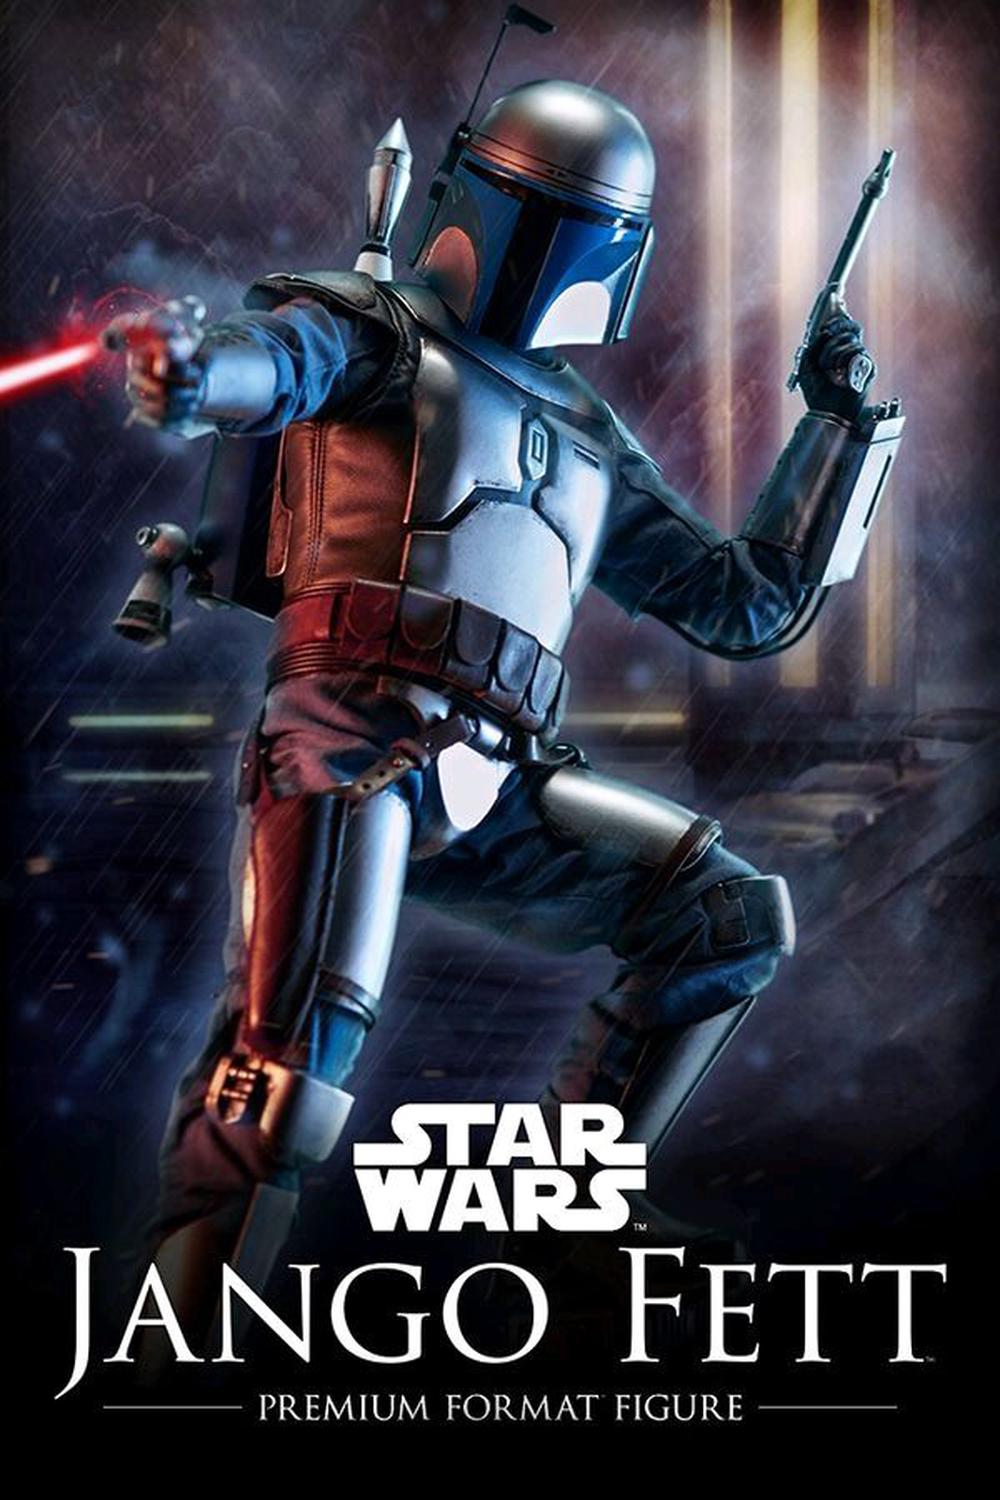 sideshow collectibles star wars